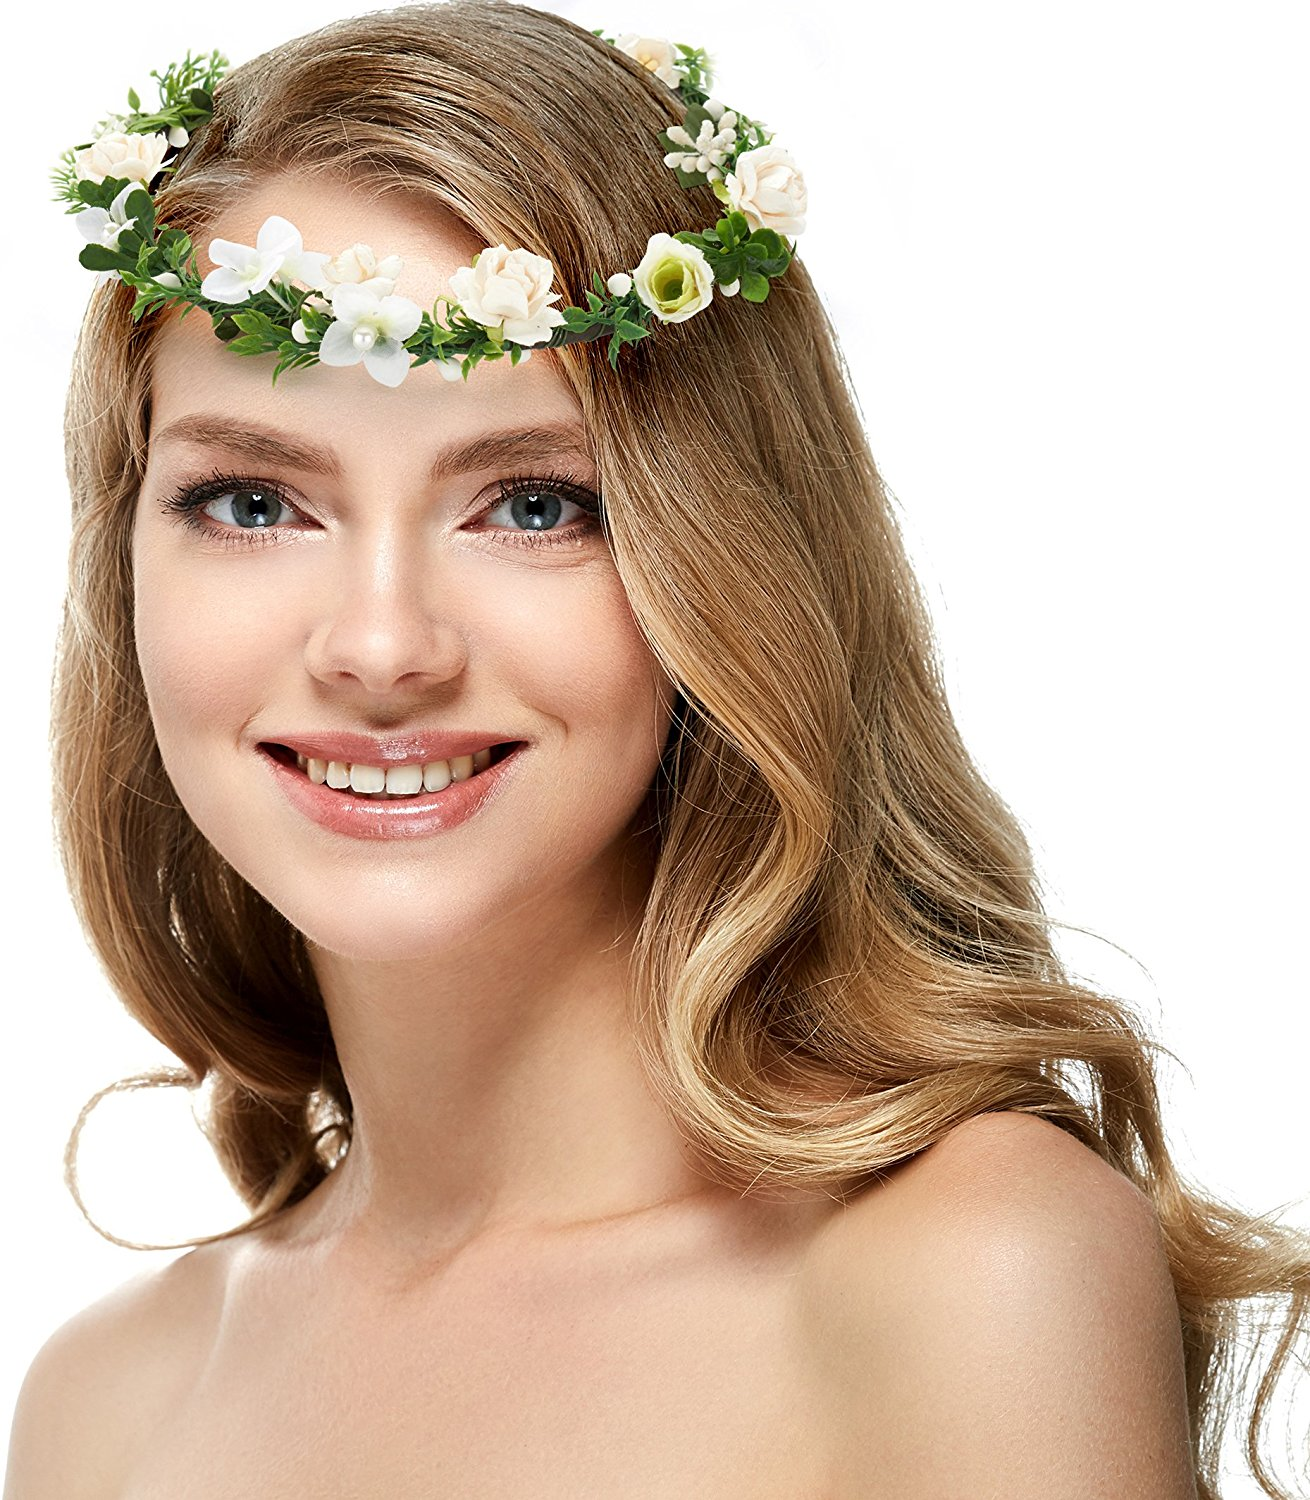 Cheap bohemian flower headband find bohemian flower headband deals get quotations bohemian rose flower crown floral headband for wedding festivals wreath boho garland white izmirmasajfo